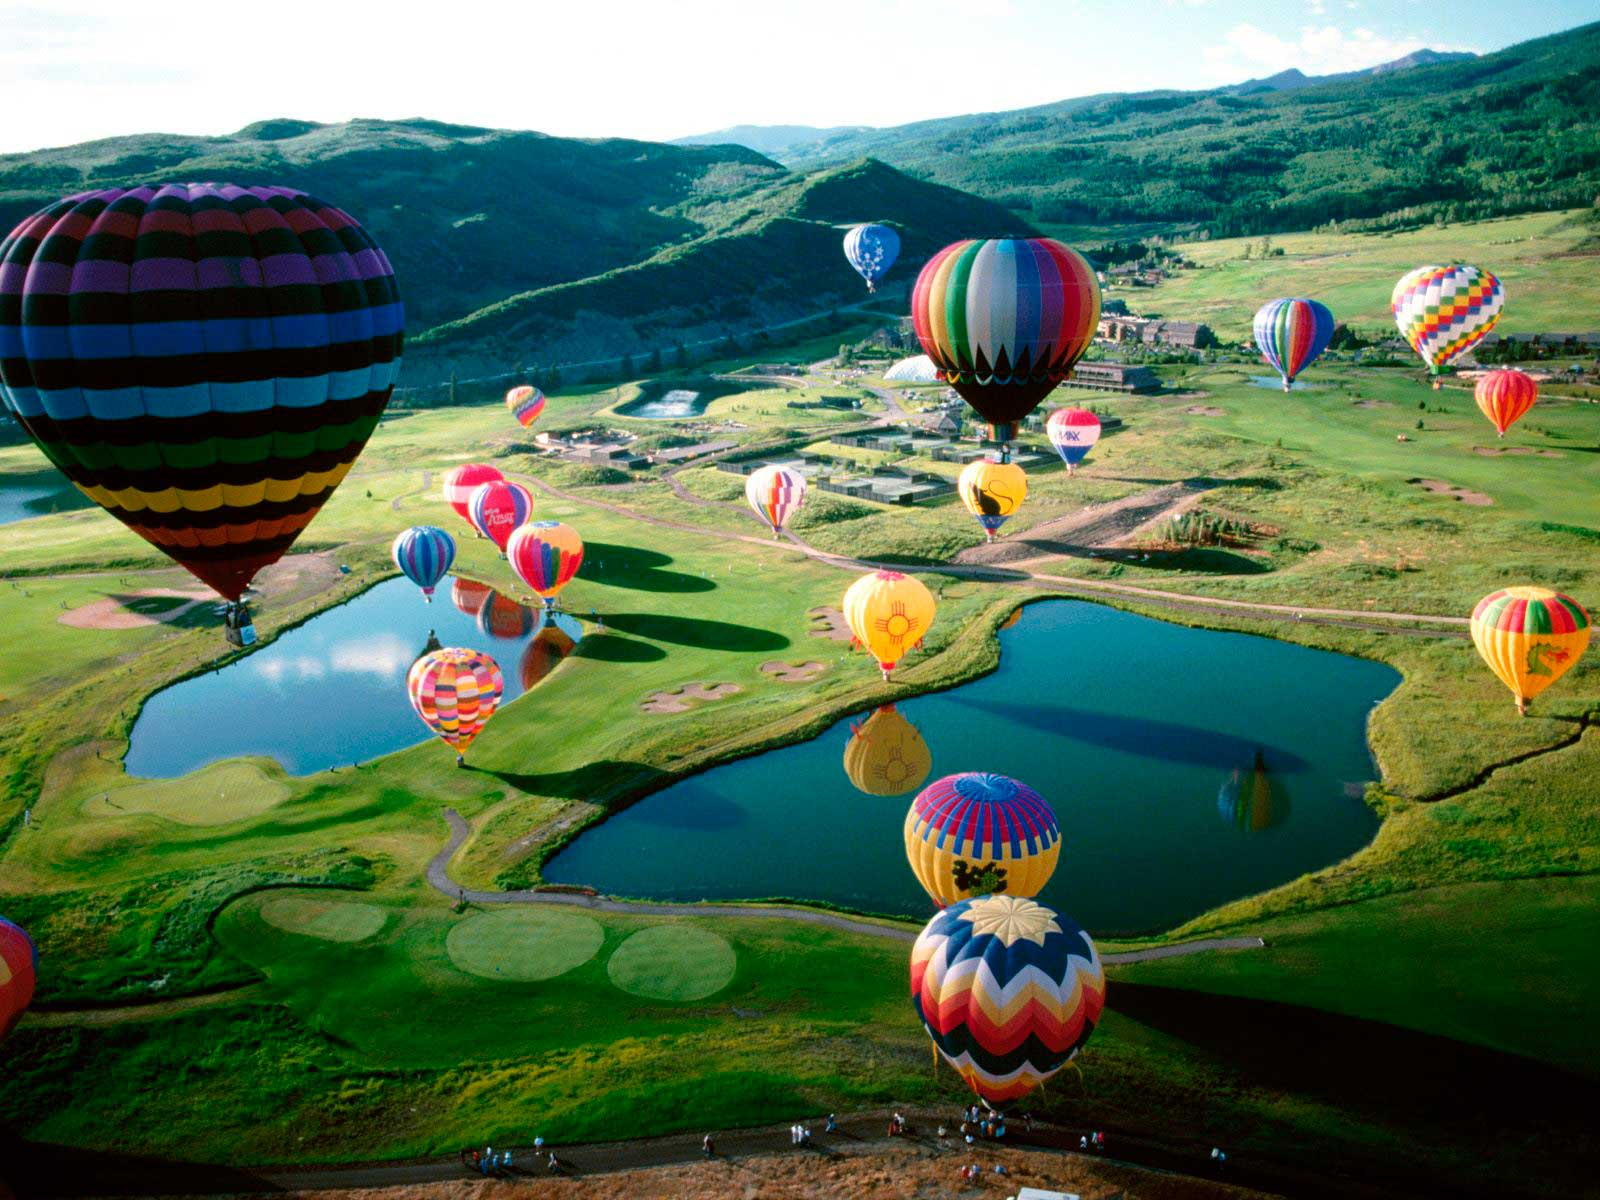 Crédito foto: http://www.travelenvogue.com/specials-and-reviews/view/50/Snowmass-Balloon-Festival